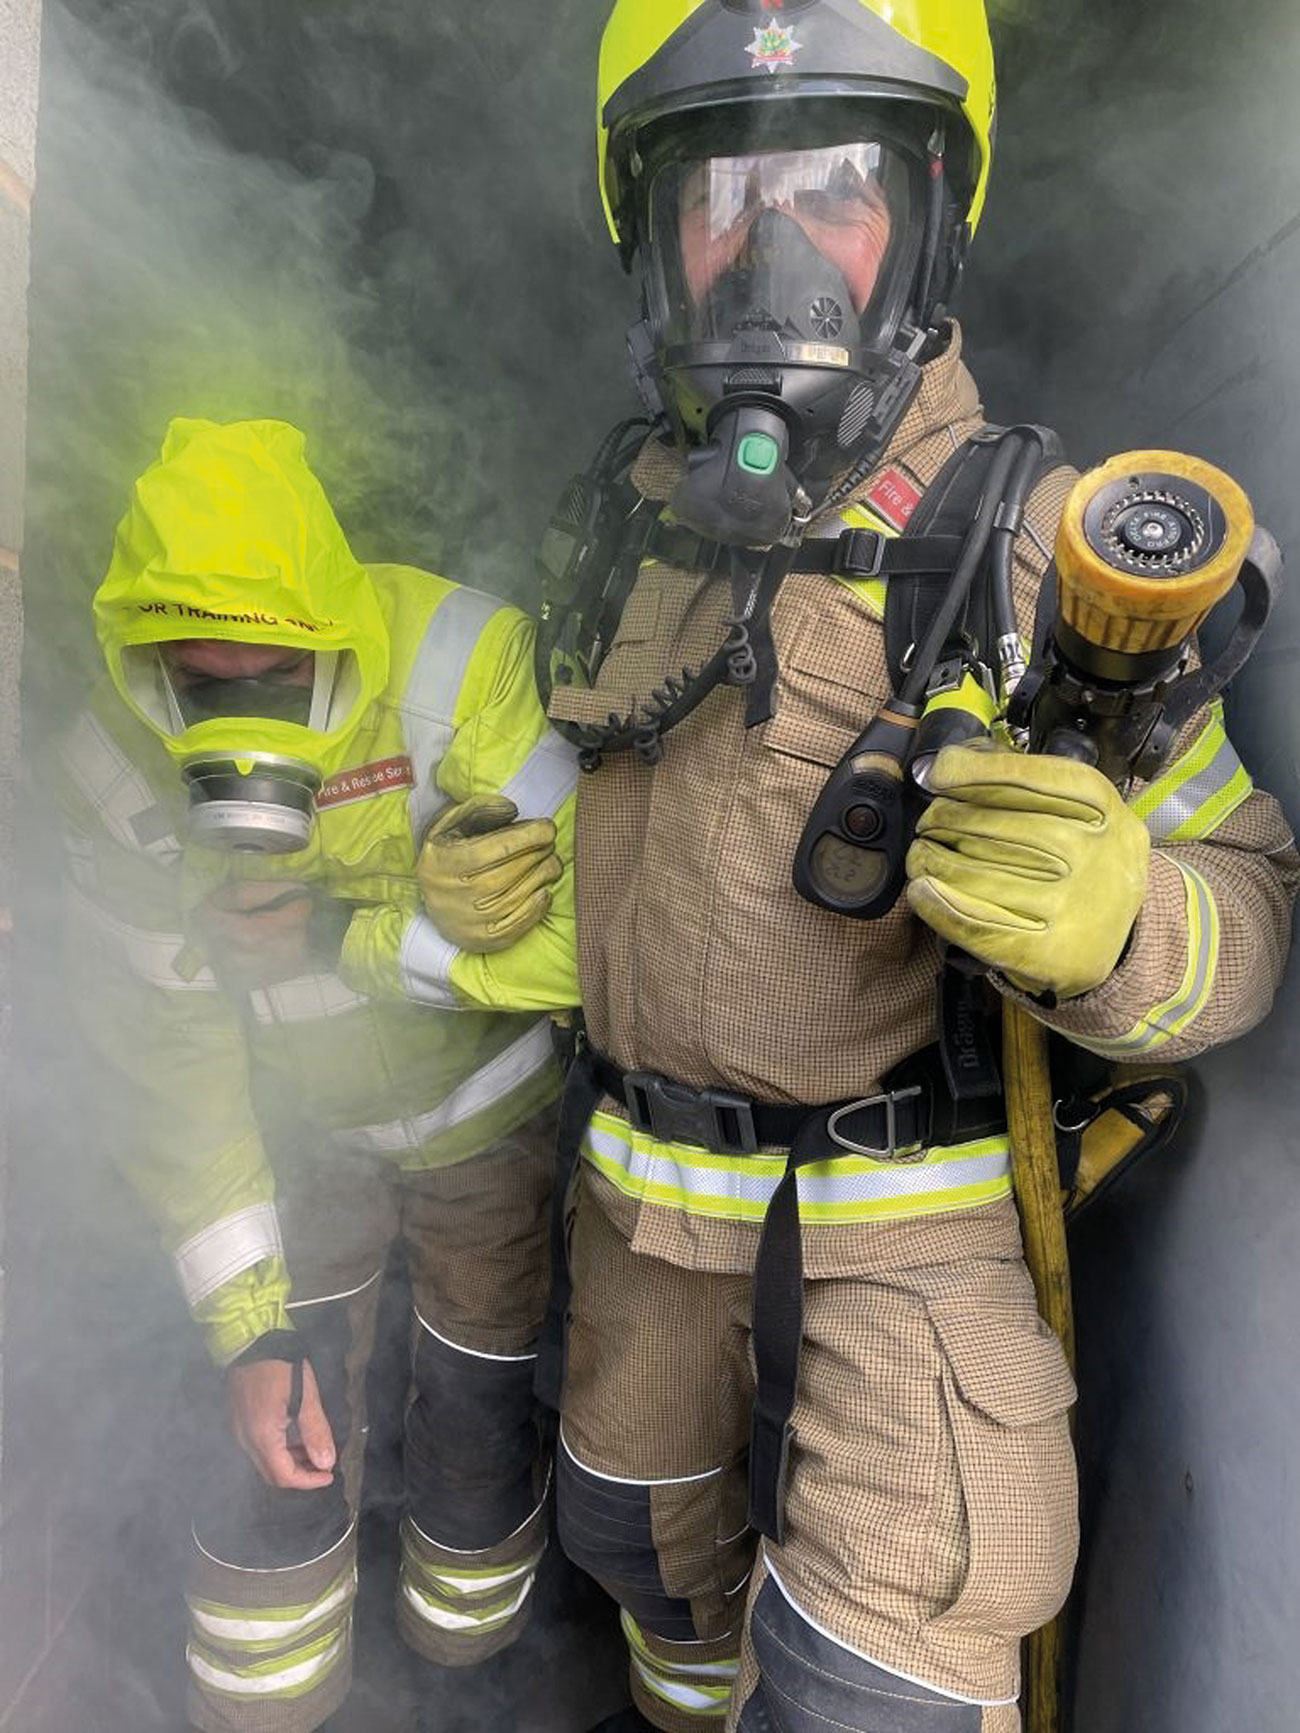 Firemaster 3 gloves in use with Nottinghamshire FRS.